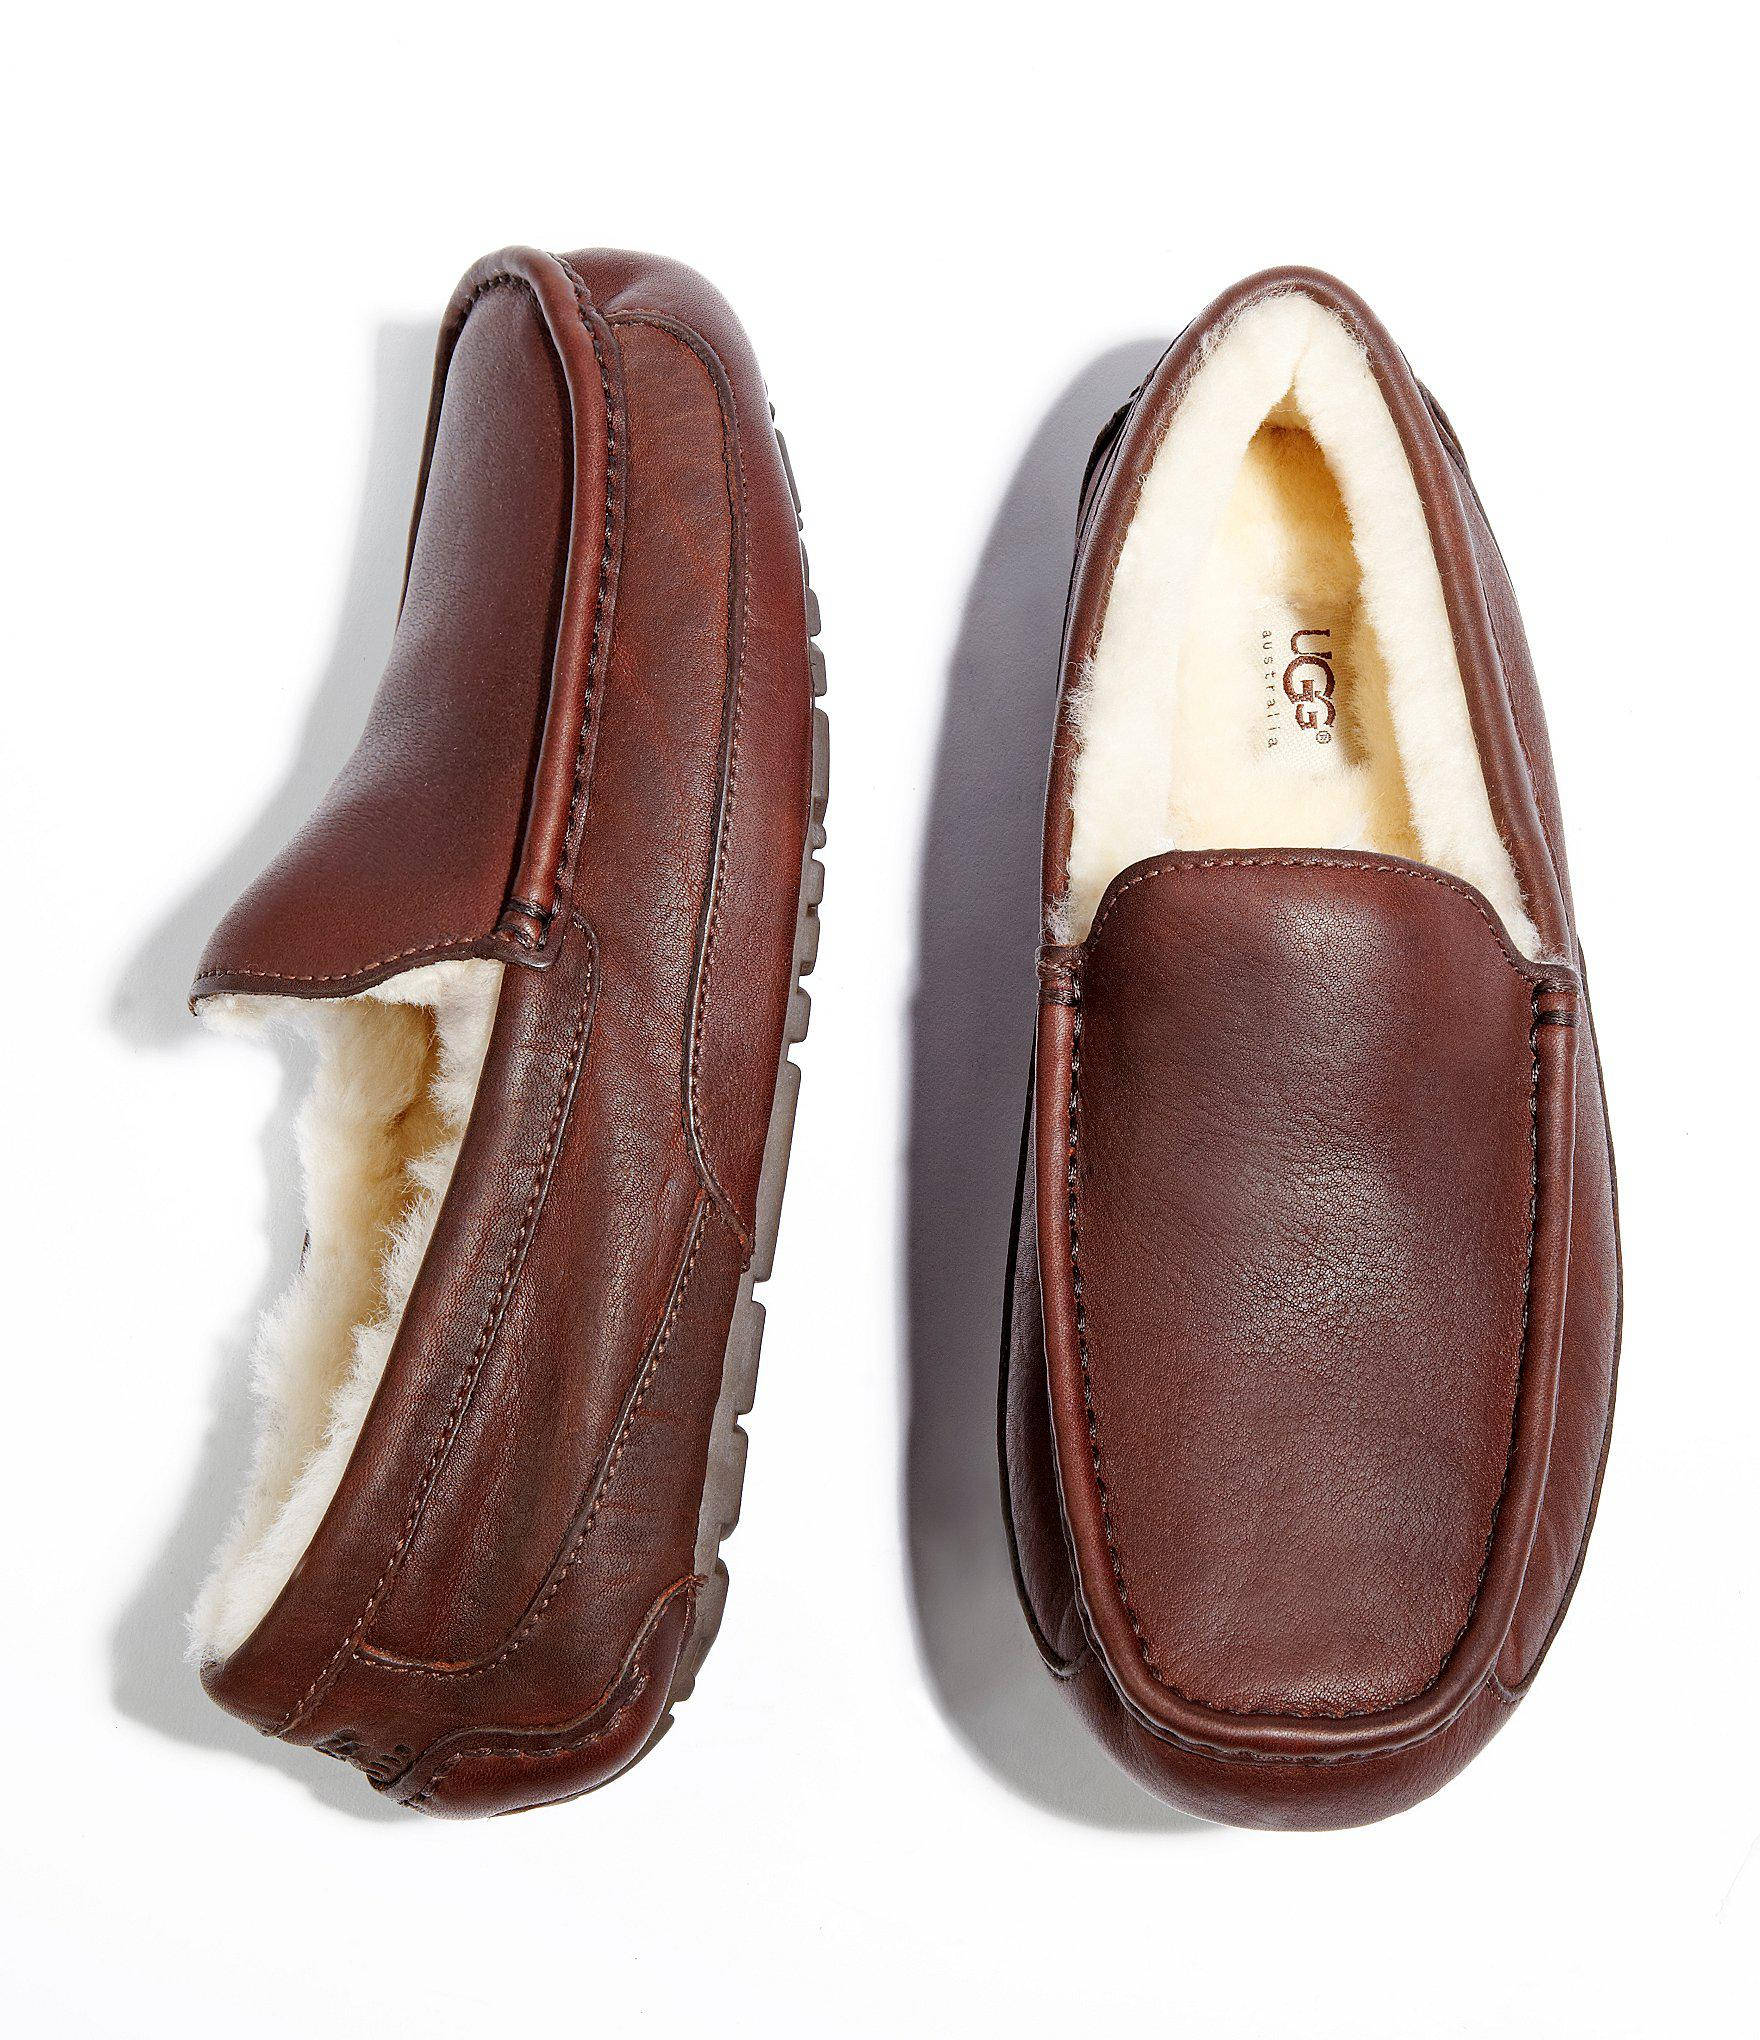 ab1e0bfff73a Ugg - Brown ® Ascot Men ́s Leather Slippers for Men - Lyst. View fullscreen